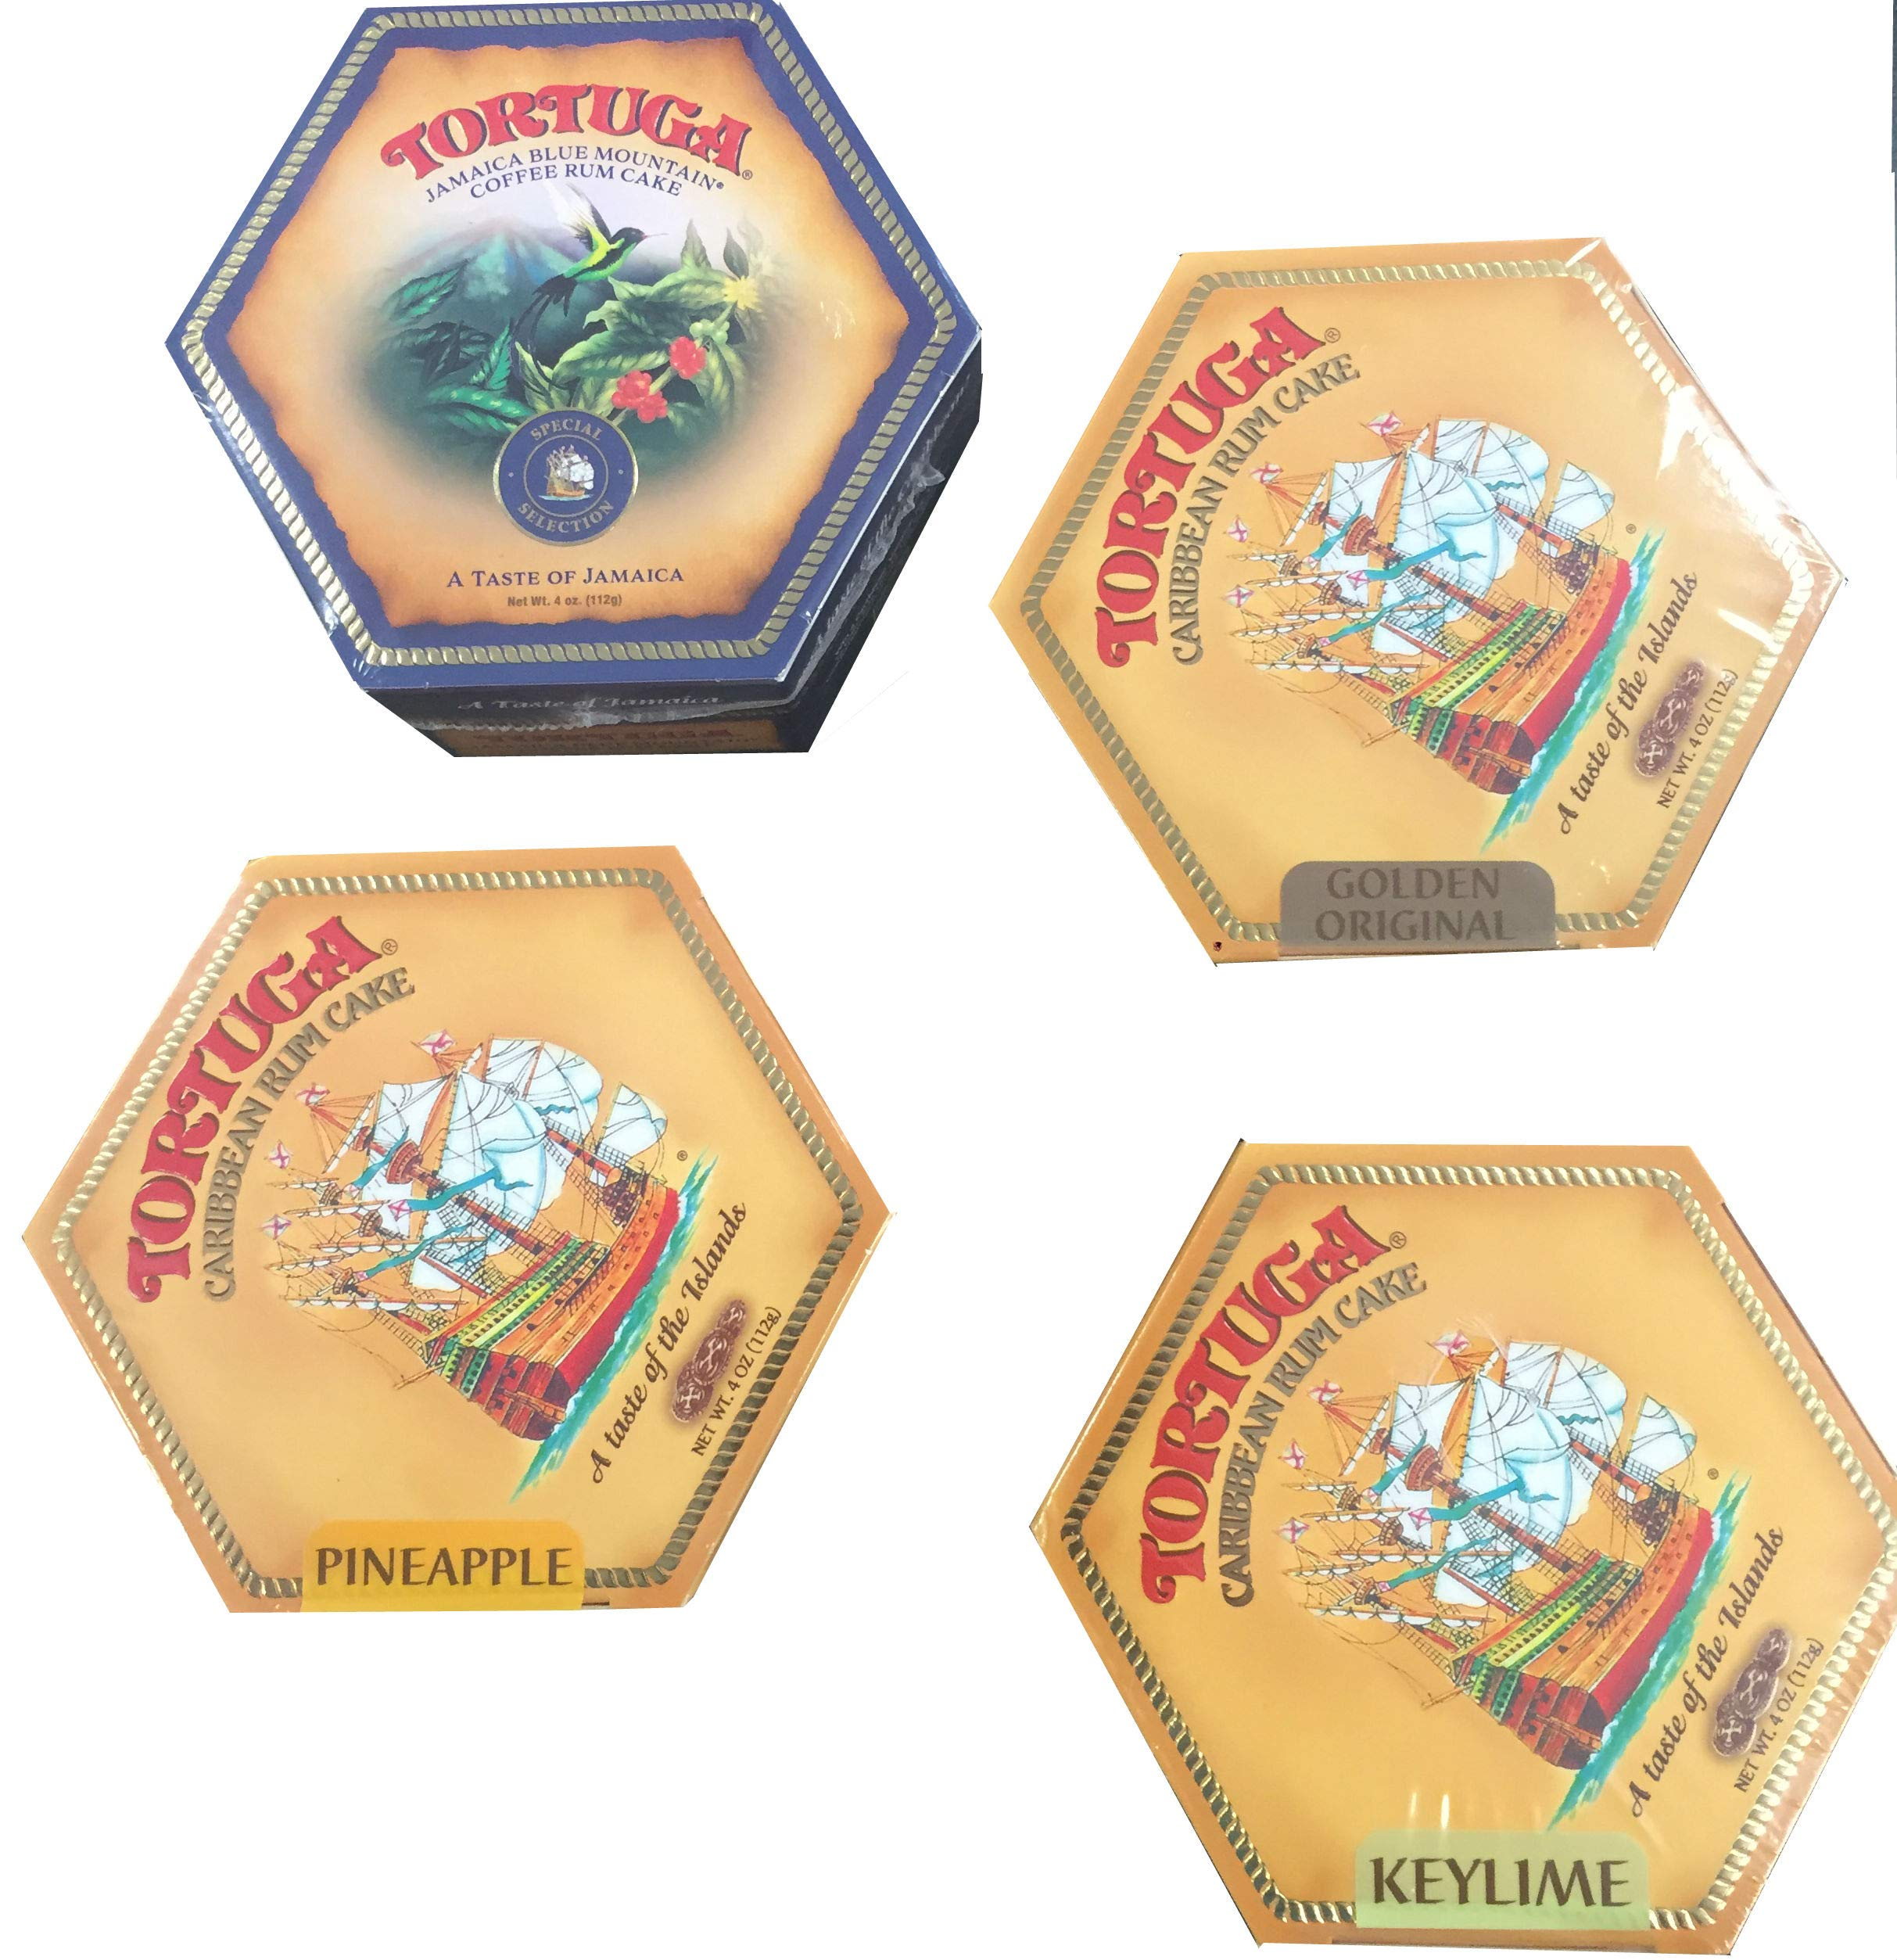 Tortuga Caribbean Rum Cake 4 Pack Assortment- Original, Keylime, Pineapple & Blue Mountain Coffee by Tortuga (Image #2)